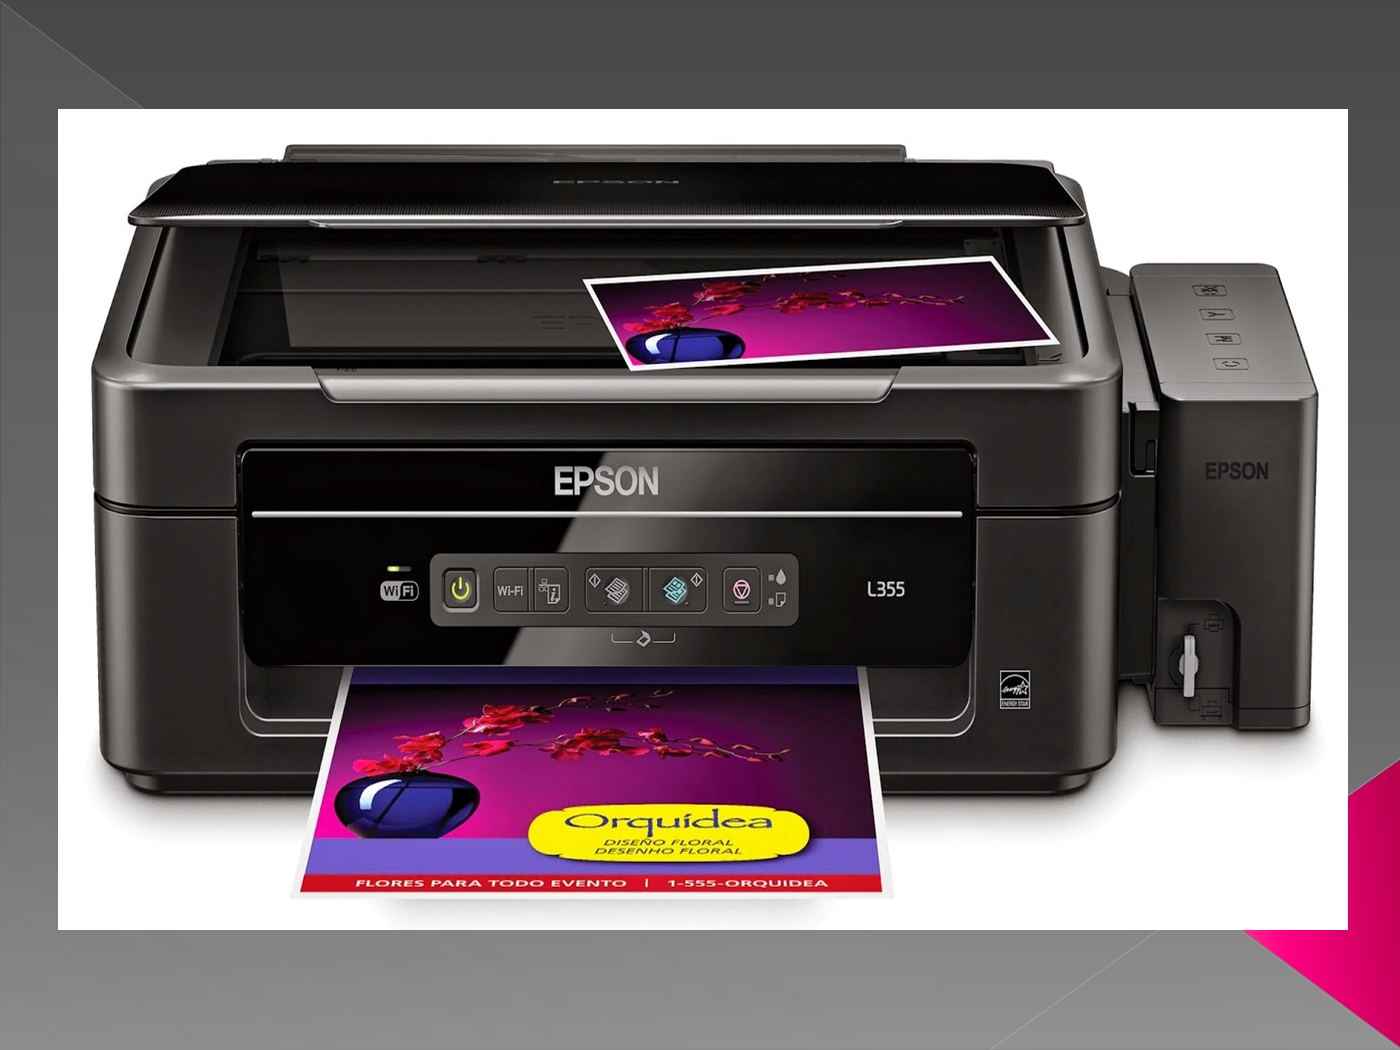 descargar driver epson l355 windows 8 64 bits